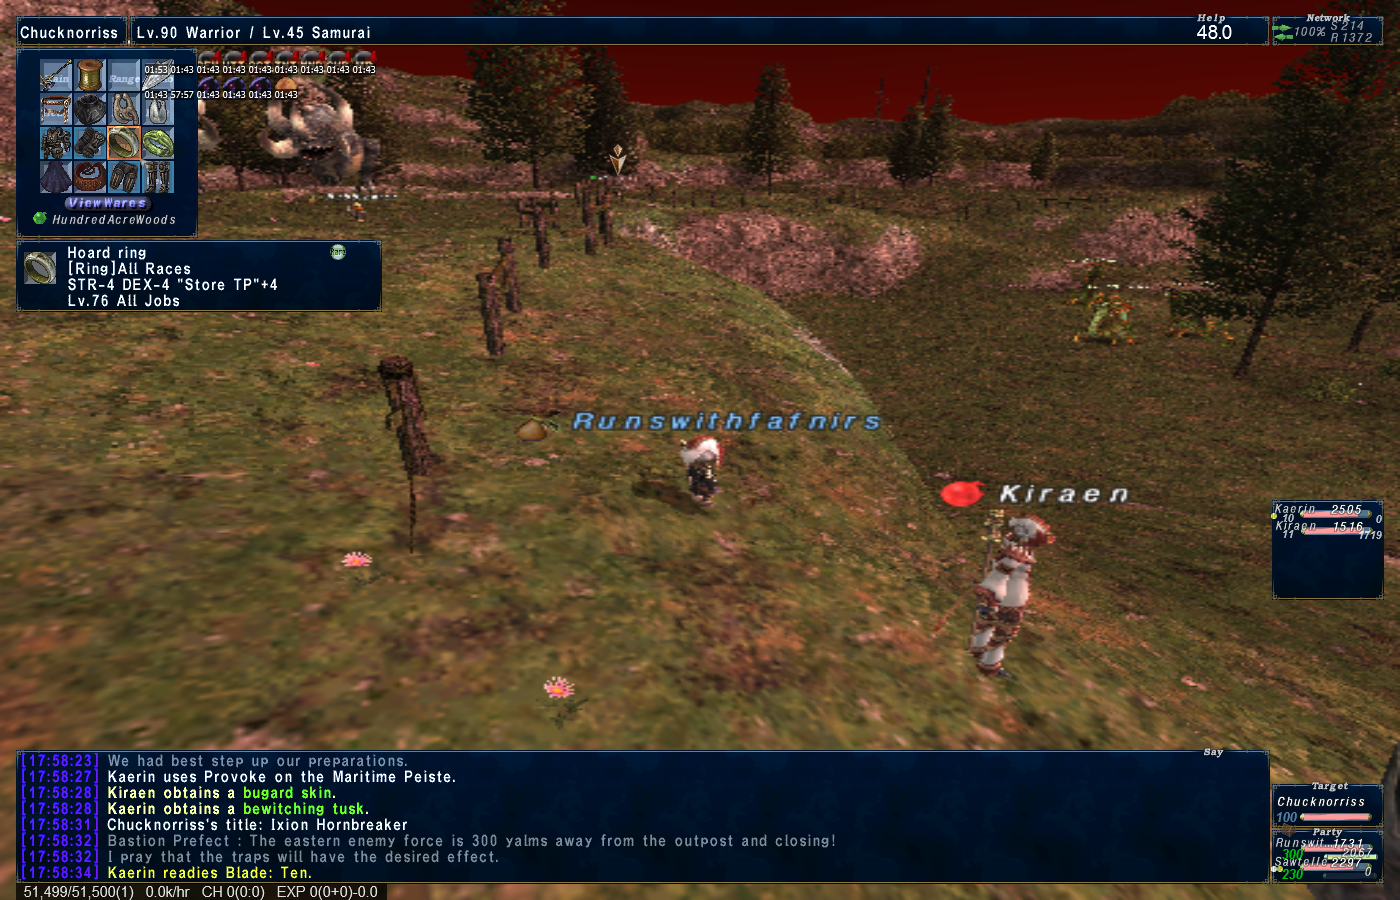 aurara ffxi your bear also thread time spend fucks unemployed paying this economy taxes rest players sucking would without cock addictions german full about they money their commenting plays into wouldnt were social angry xxiii player guys rude being trying impress decade almost gimpconfusedwtf jobs enough well playing started dont